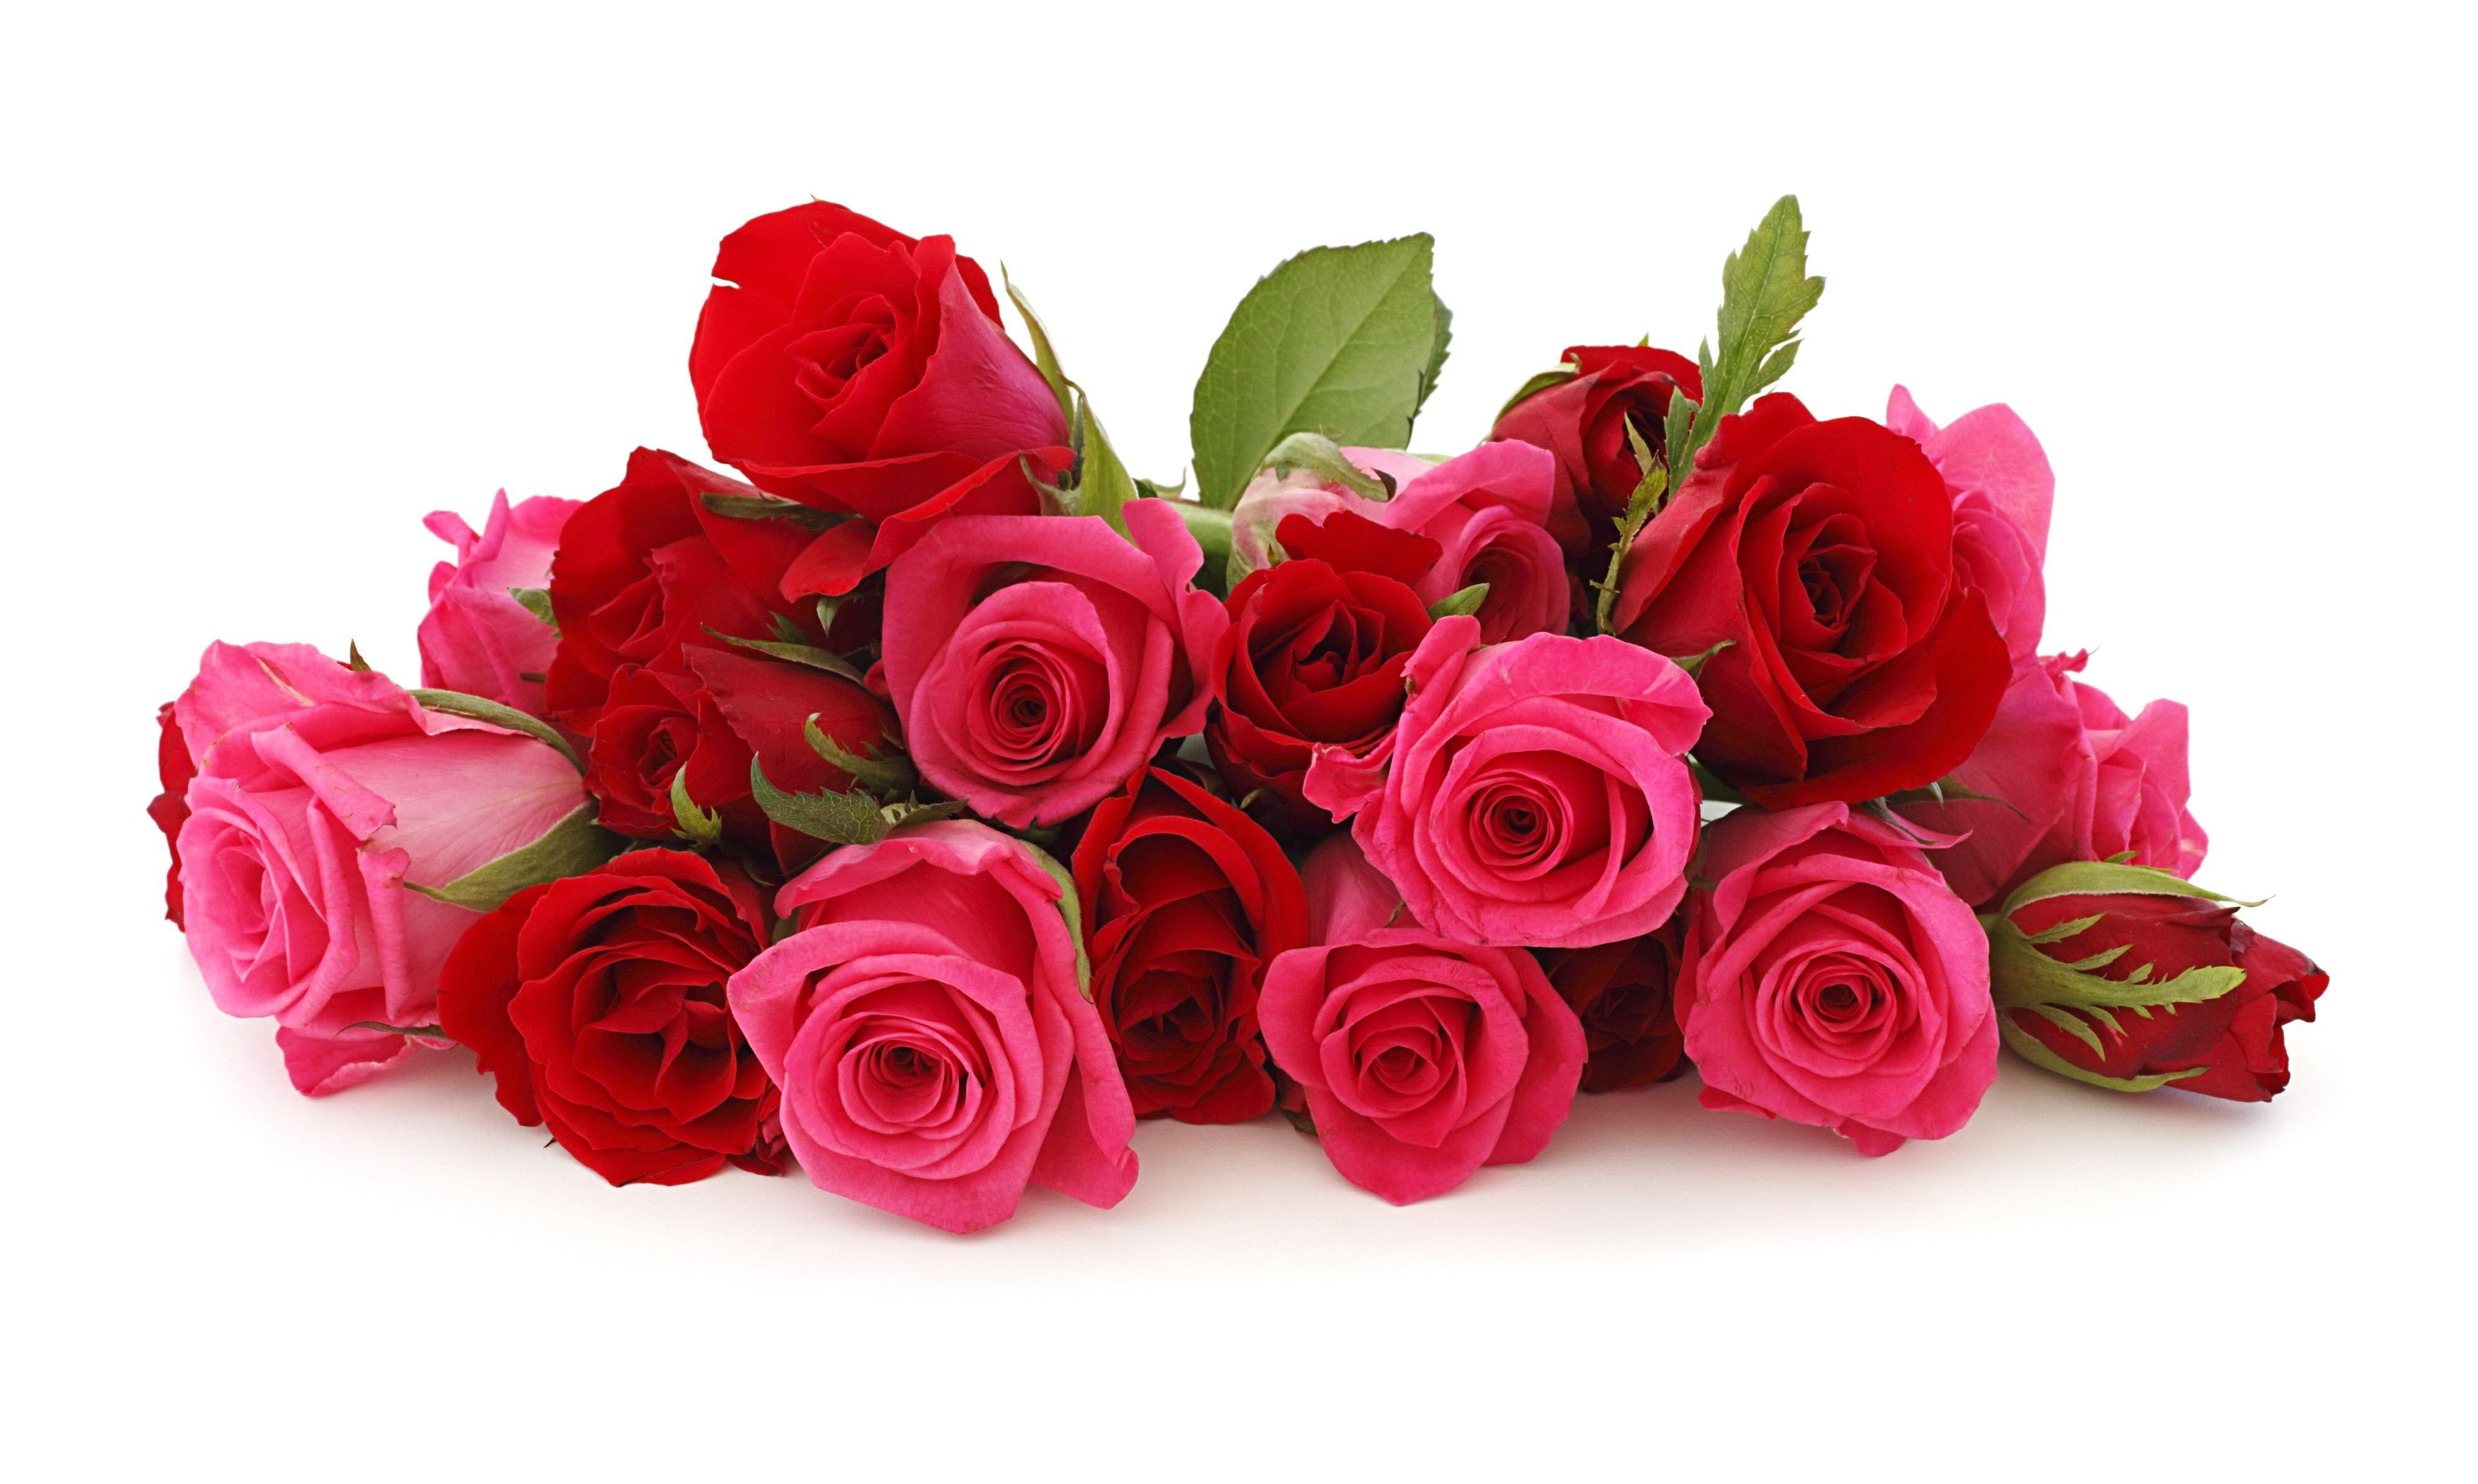 Rose Flower Picture Wallpapers